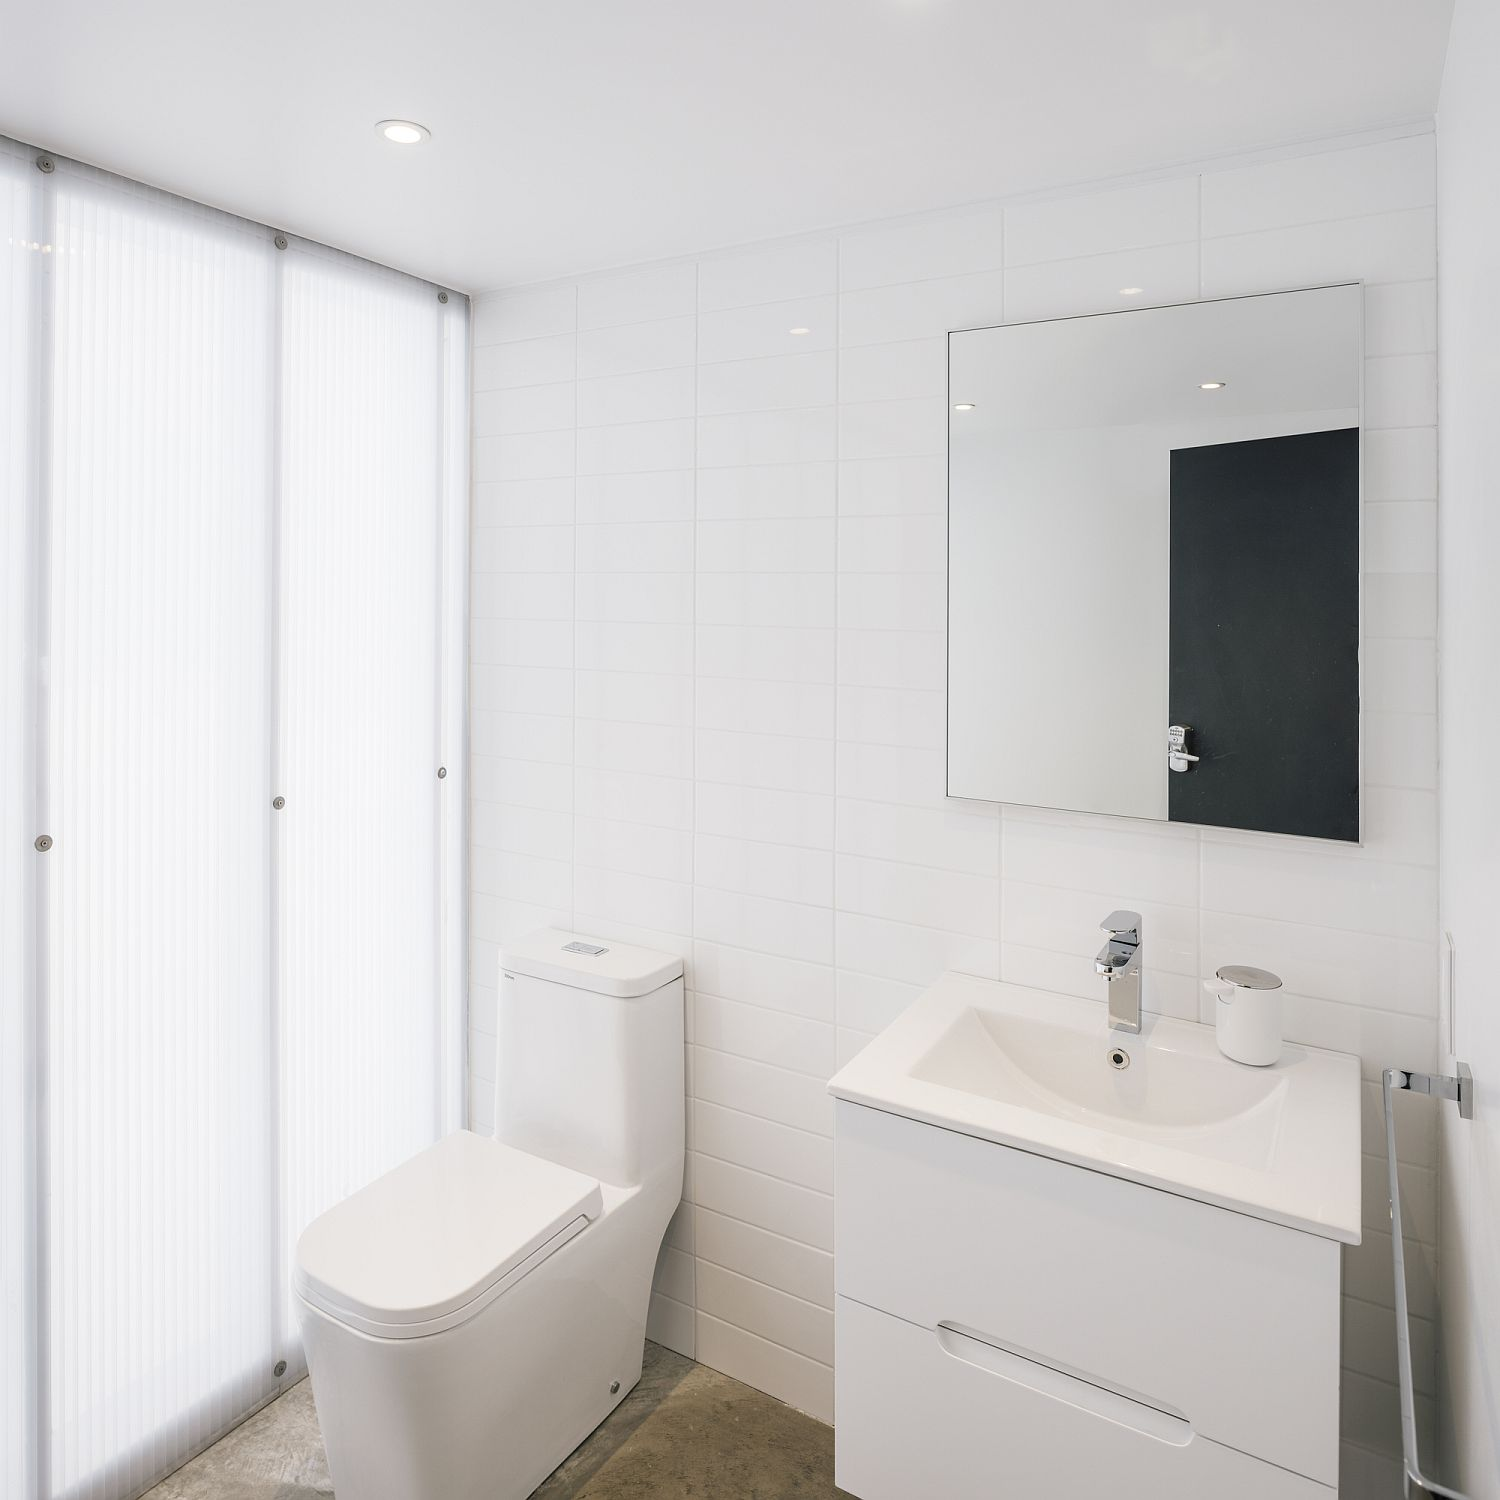 Small bathroom in white with ample natural lighting